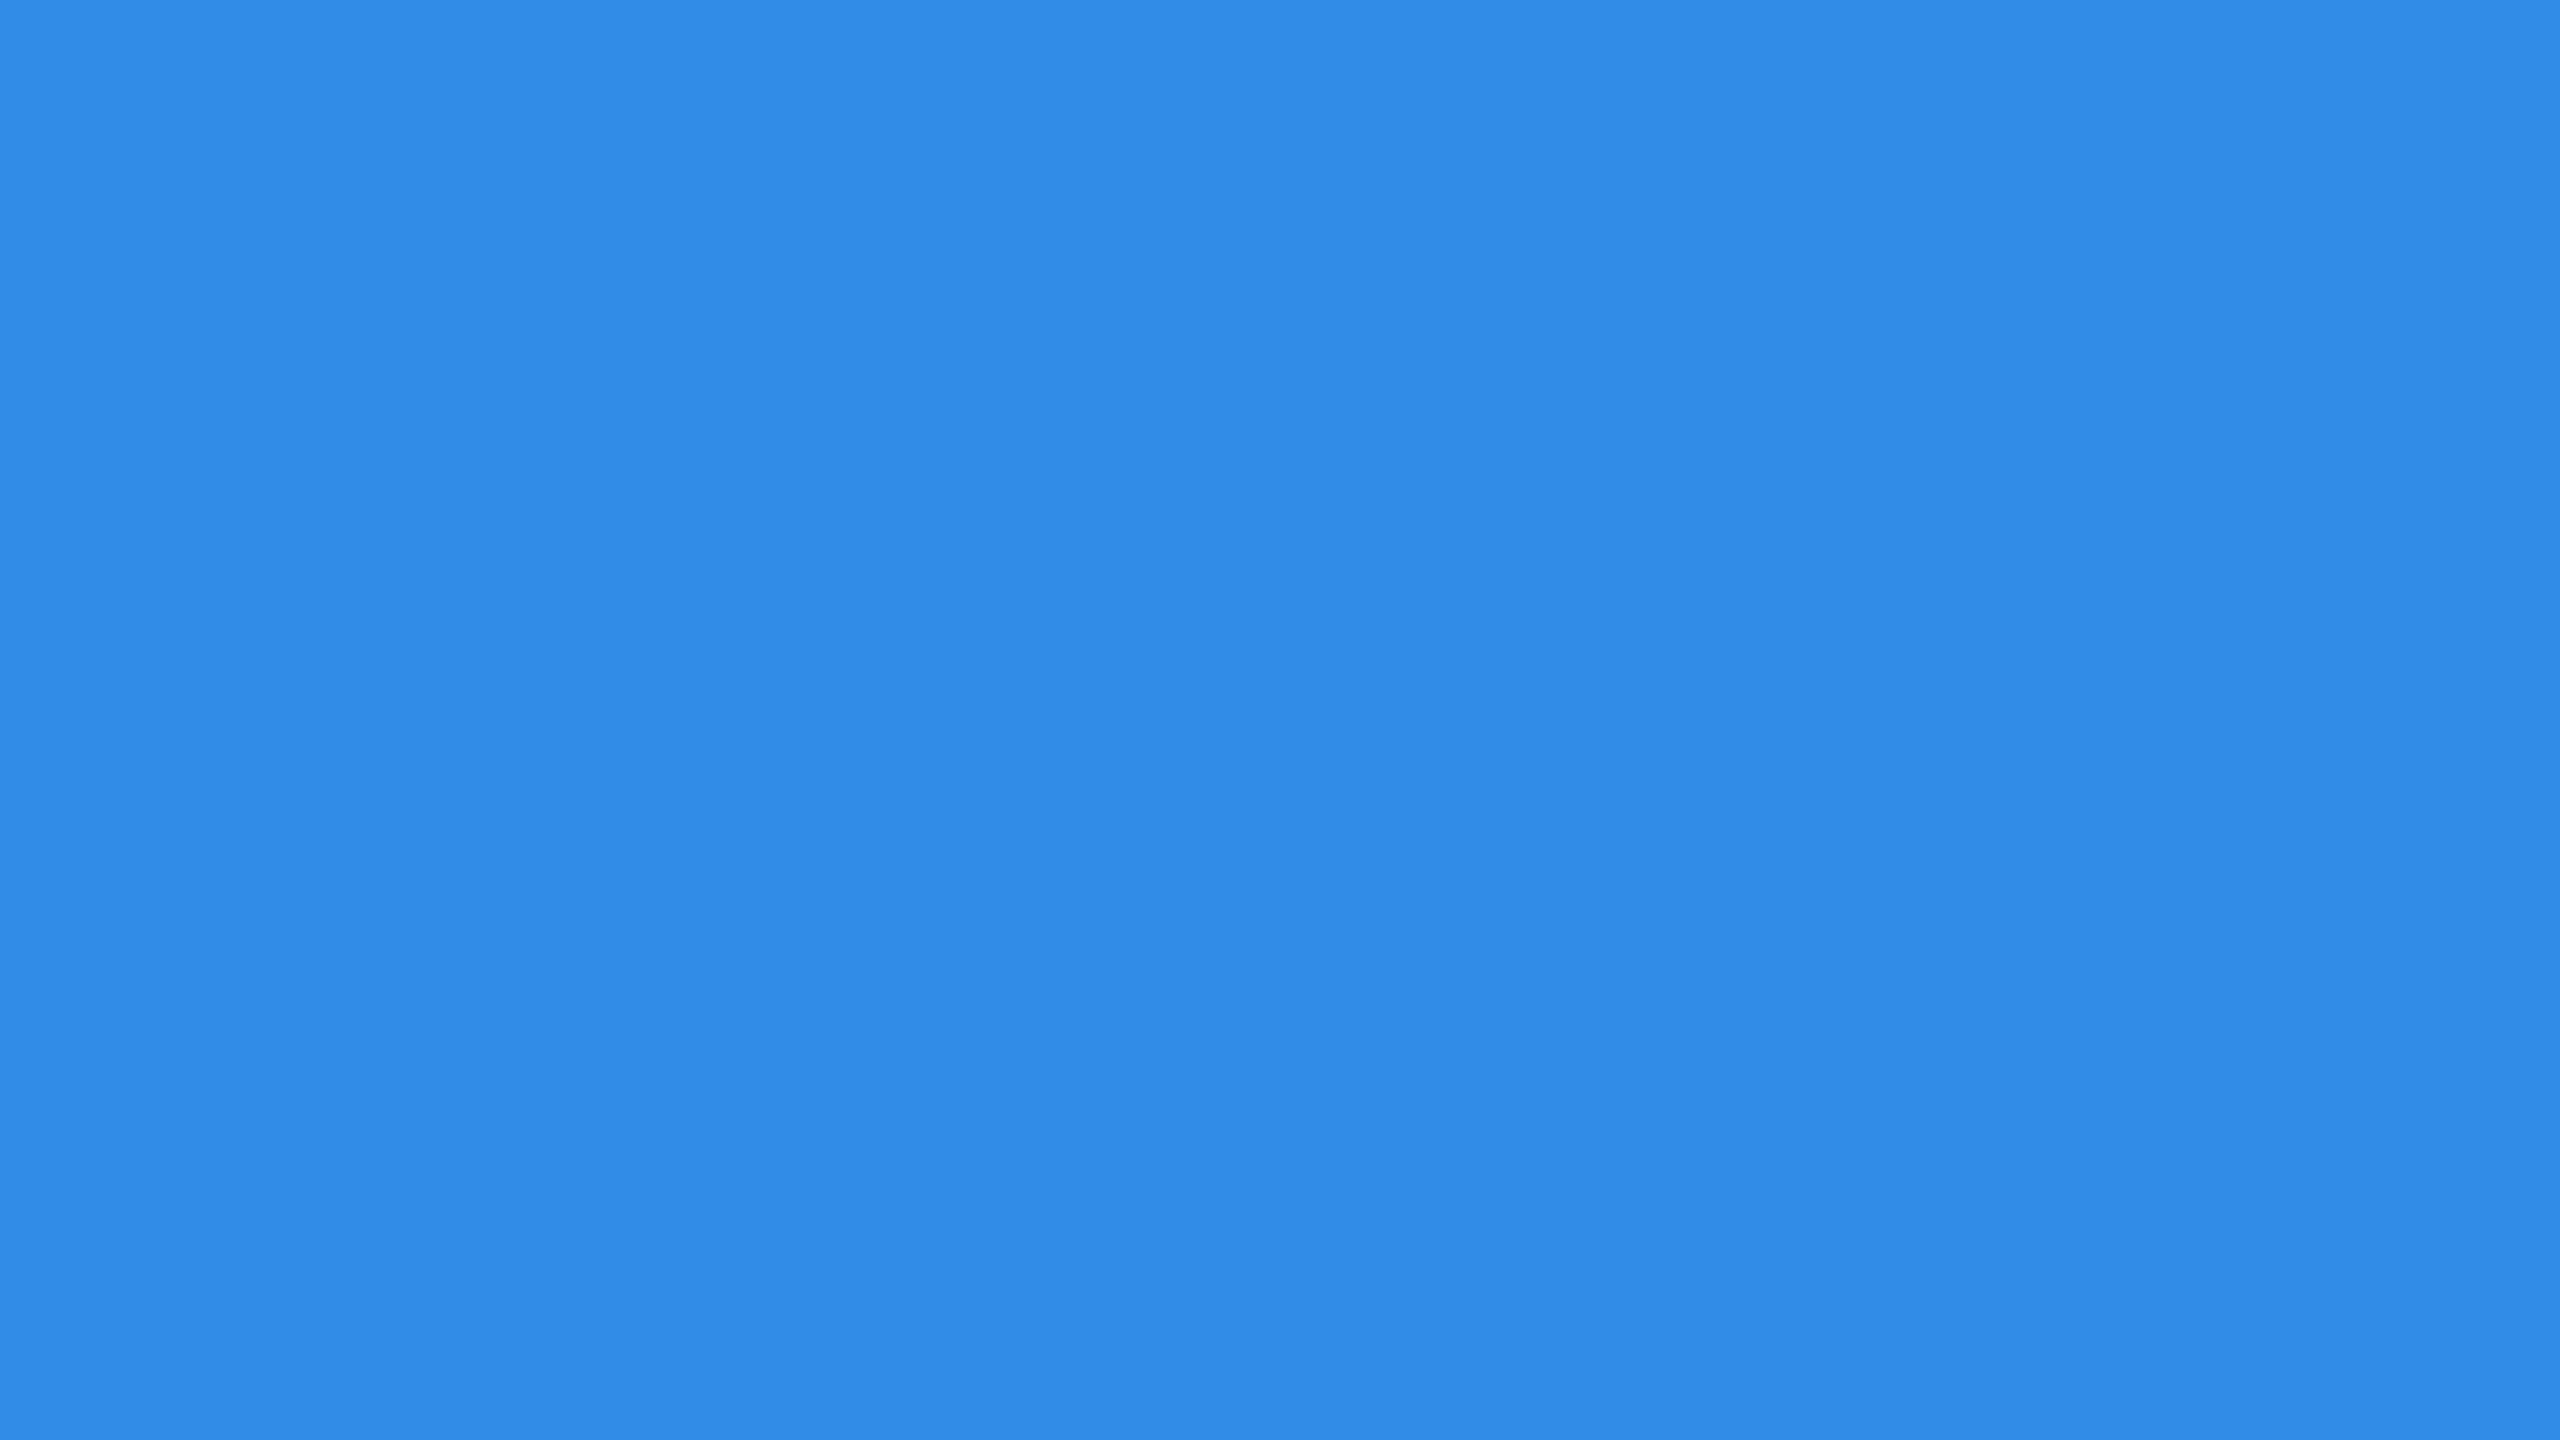 2560x1440 Bleu De France Solid Color Background